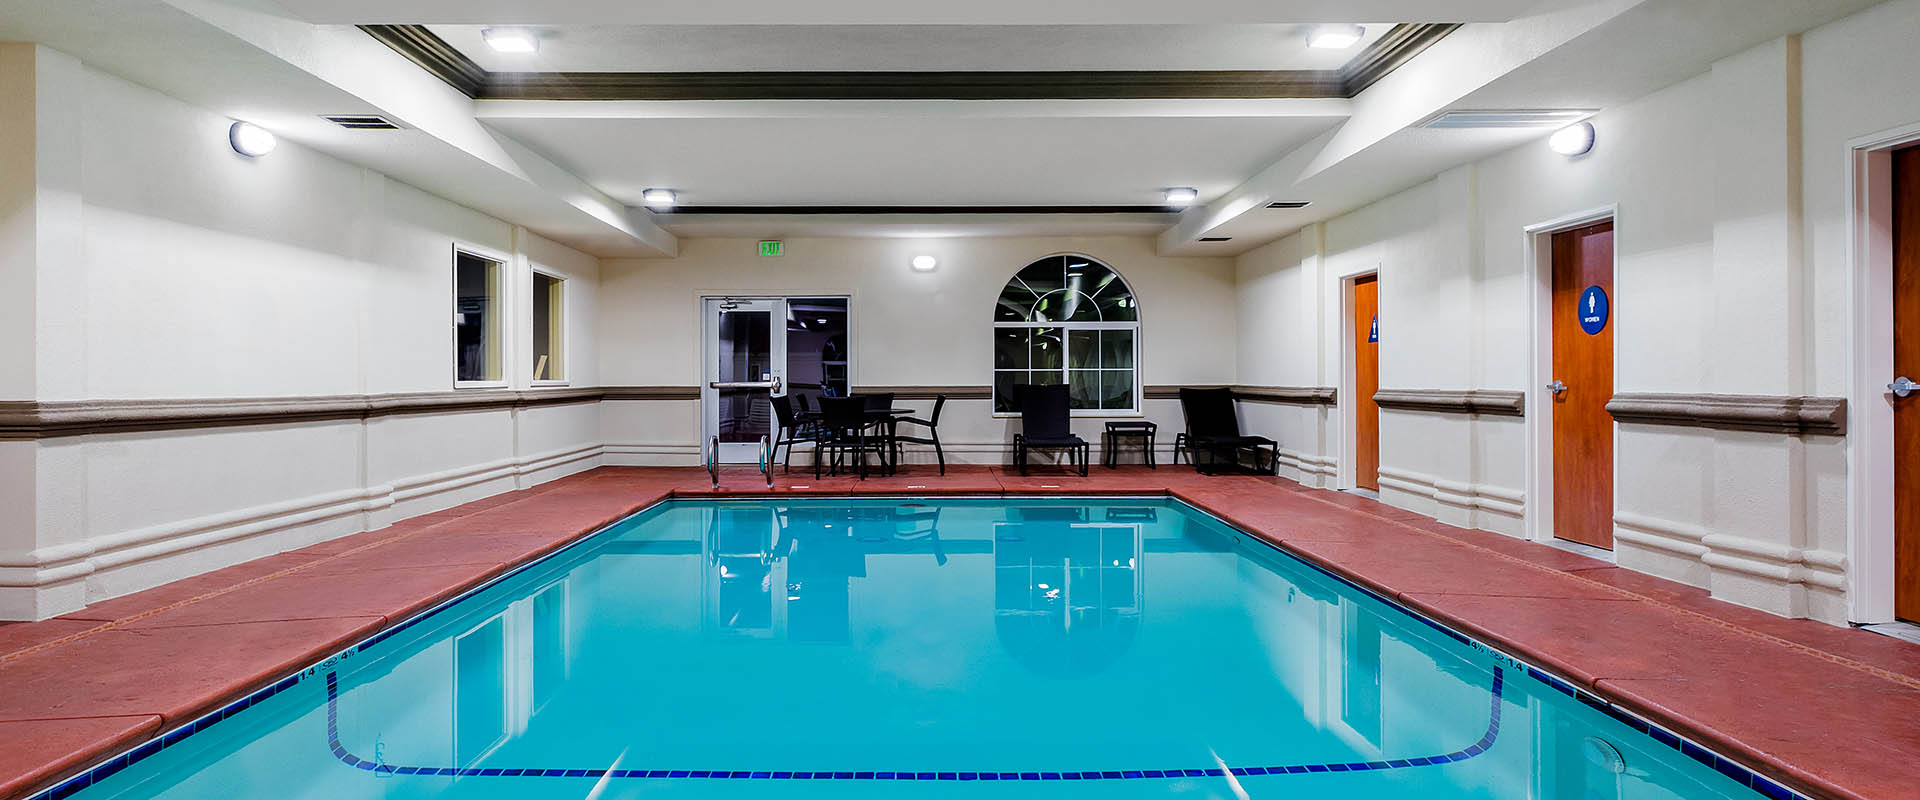 IHG Hotel, Lake Oroville hotel, California hotel, pool